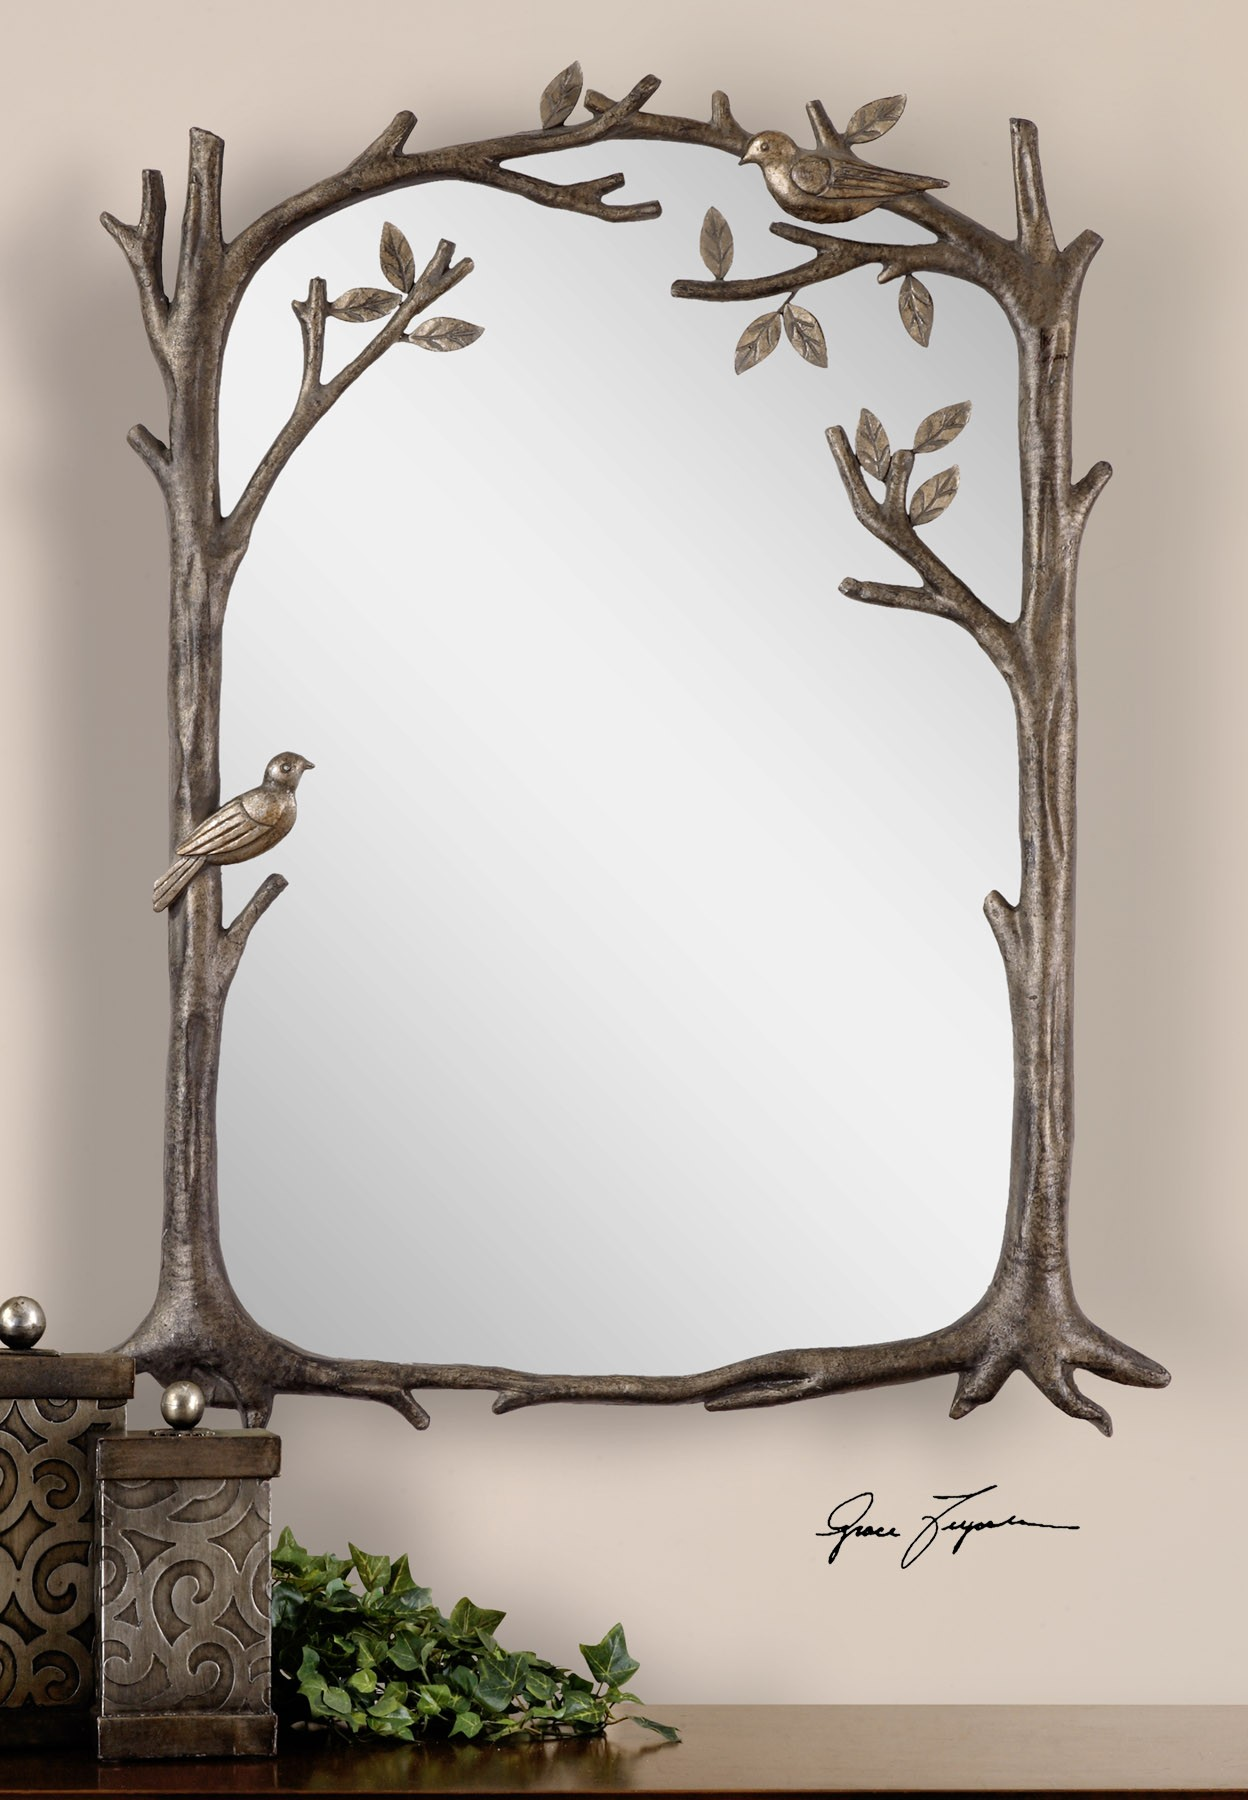 Perching birds small decorative mirror 12789 mirrors for Small decorative mirrors